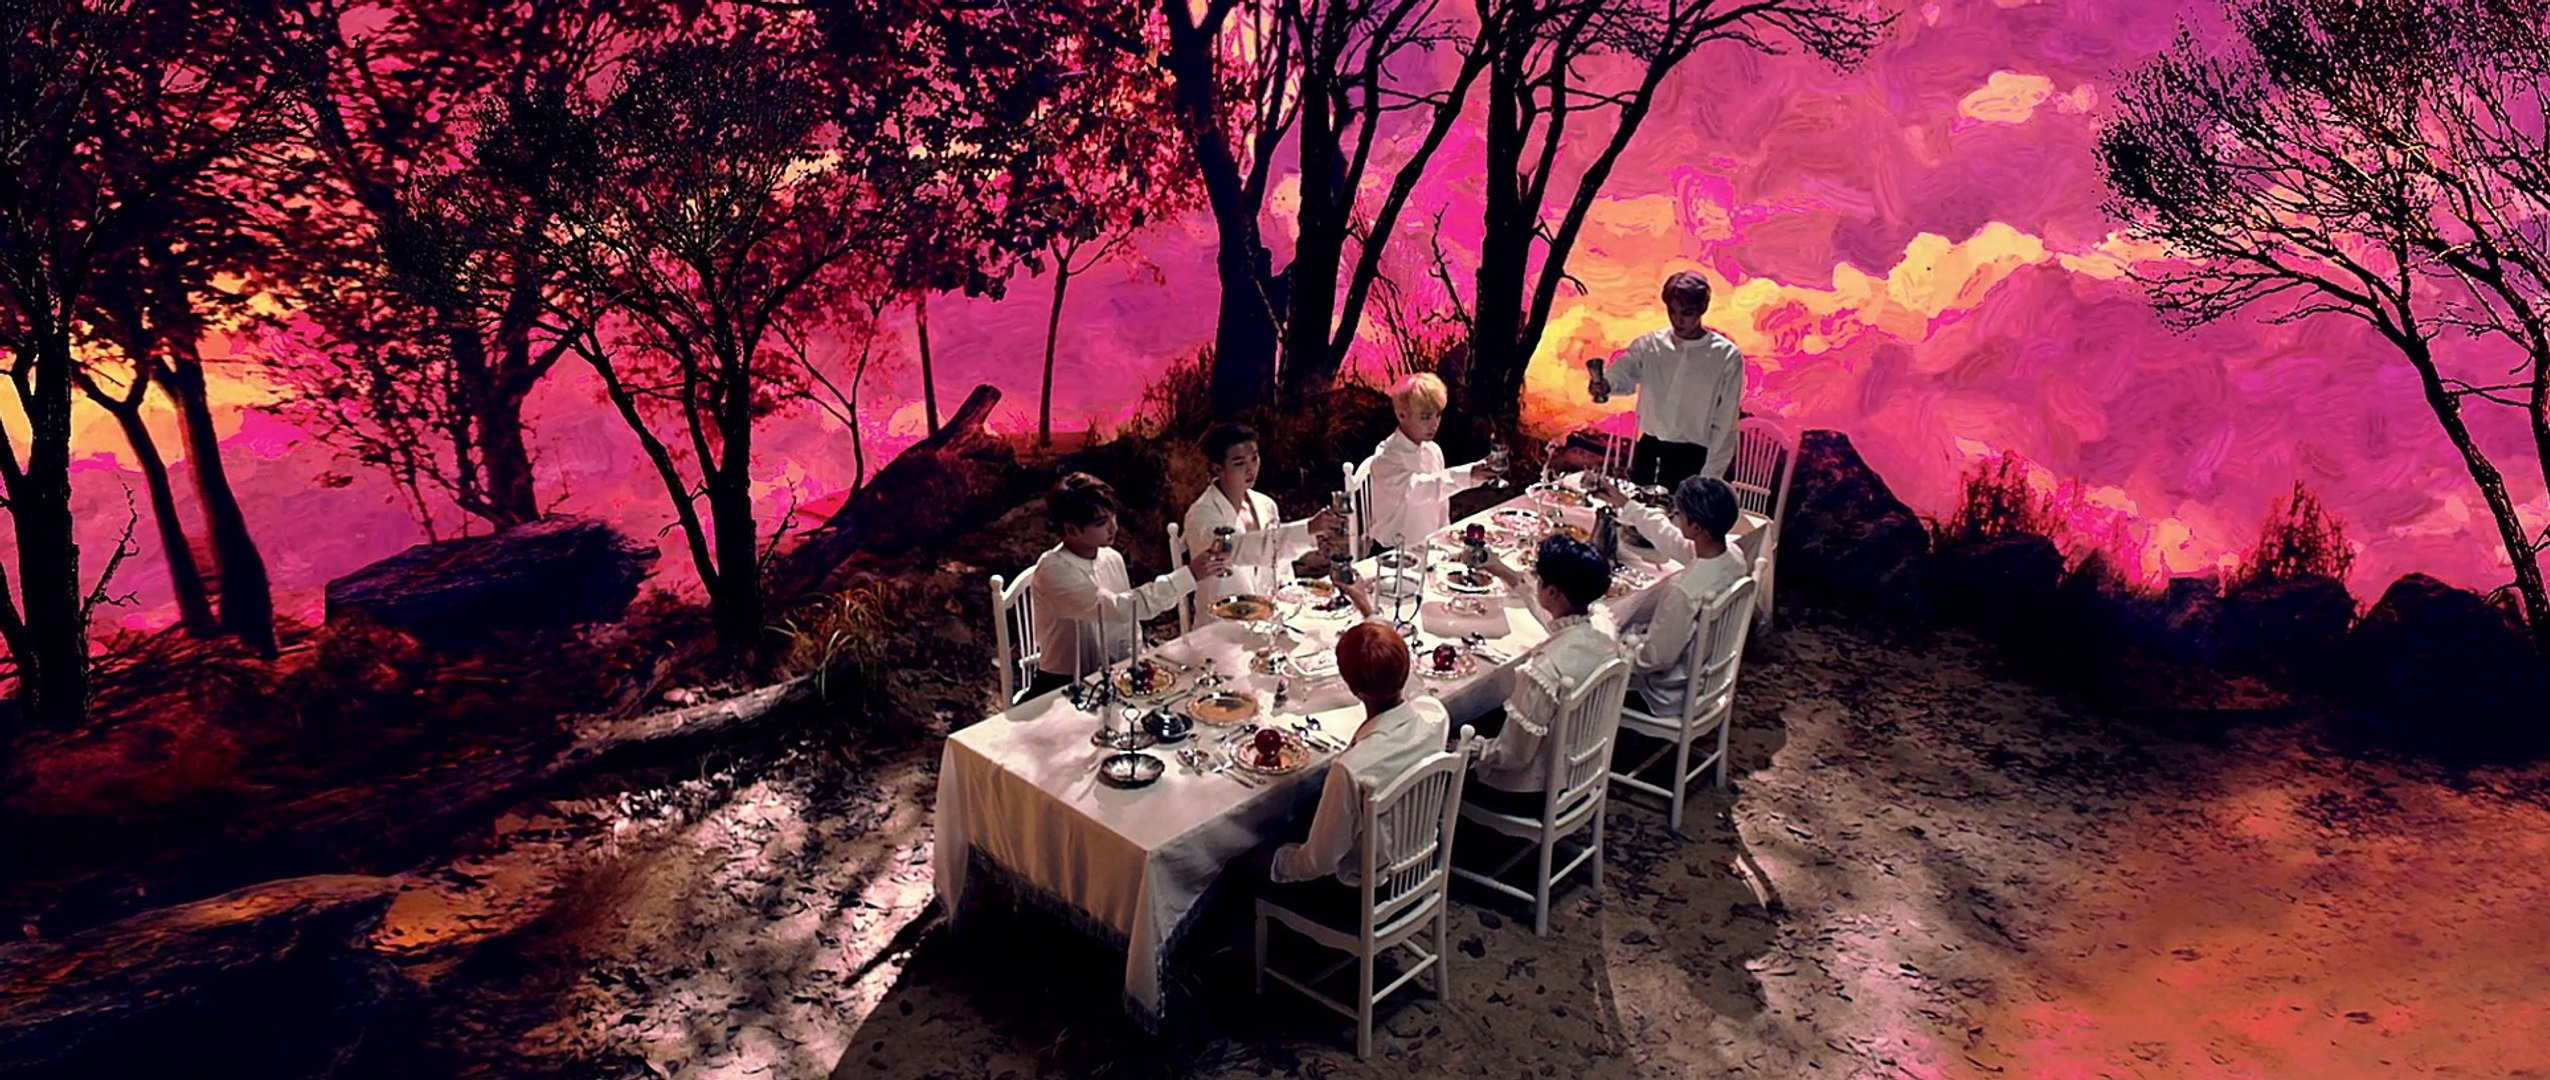 BTS - Blood Sweat & Tears